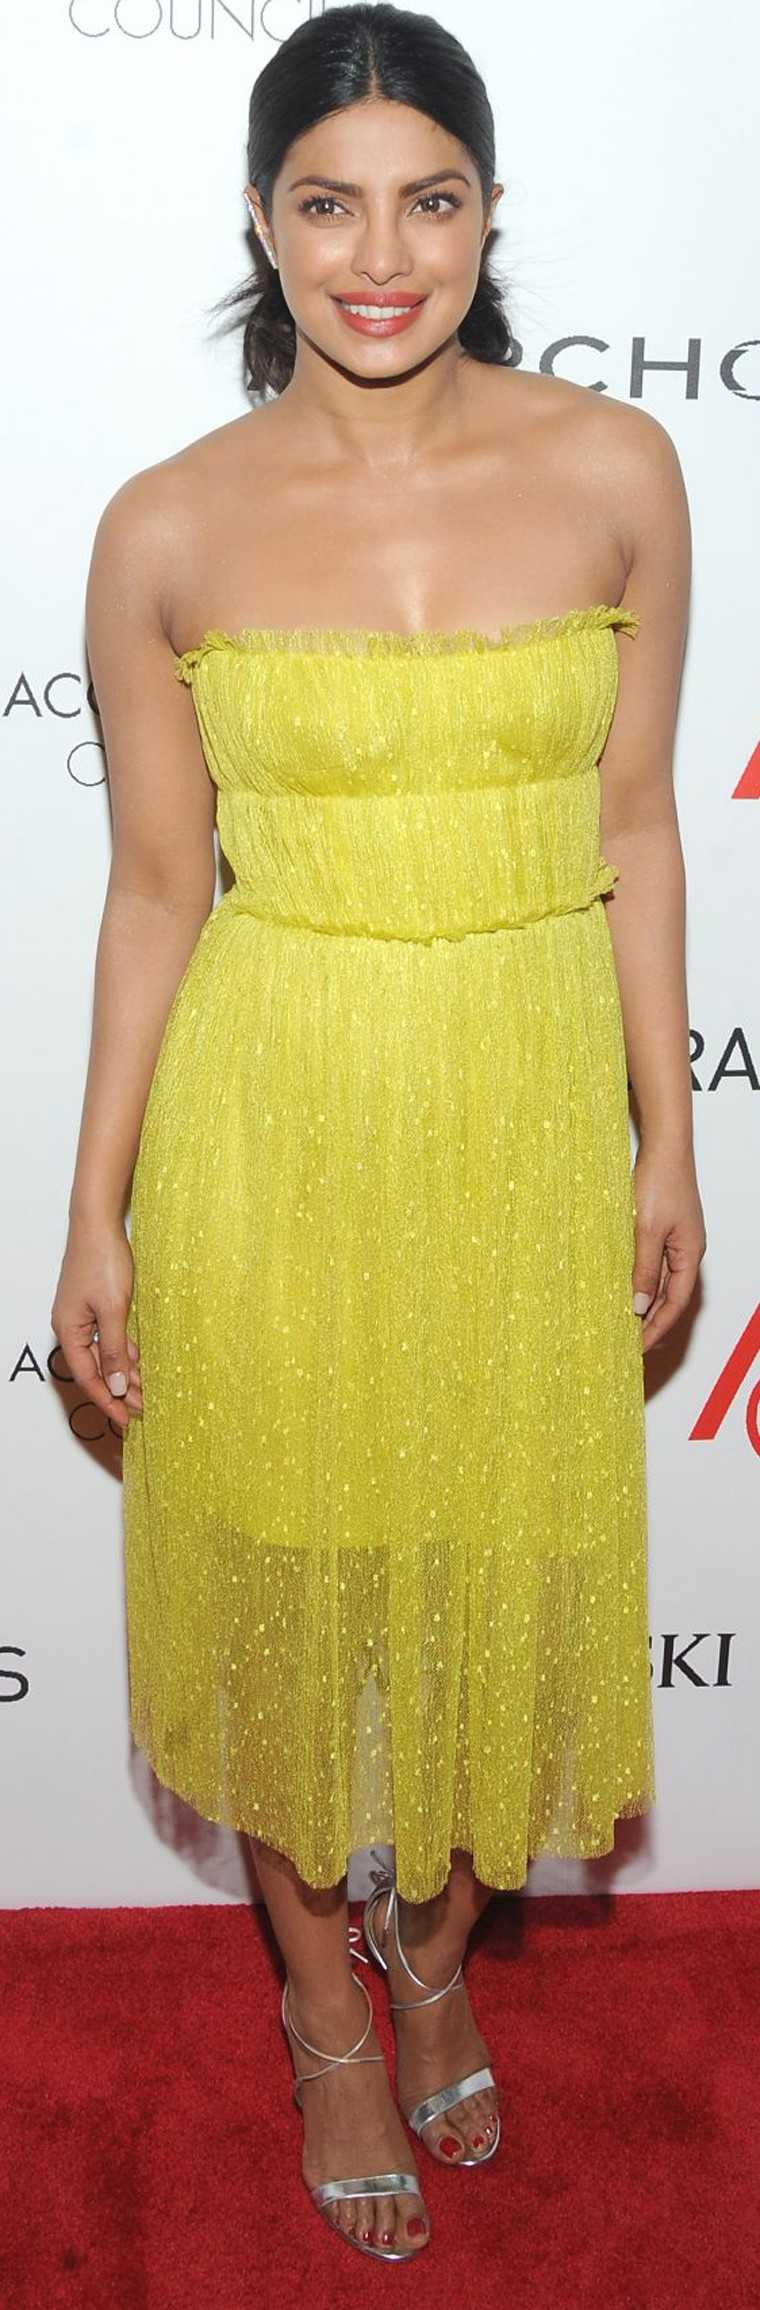 PRIYANKA CHOPRA: Always on trend, Priyanka recently sported this lime yellow Jason Wu frock. Pulled back hair, strappy silver stilettos and a red lip ensured she looked glamorous as well as pretty.